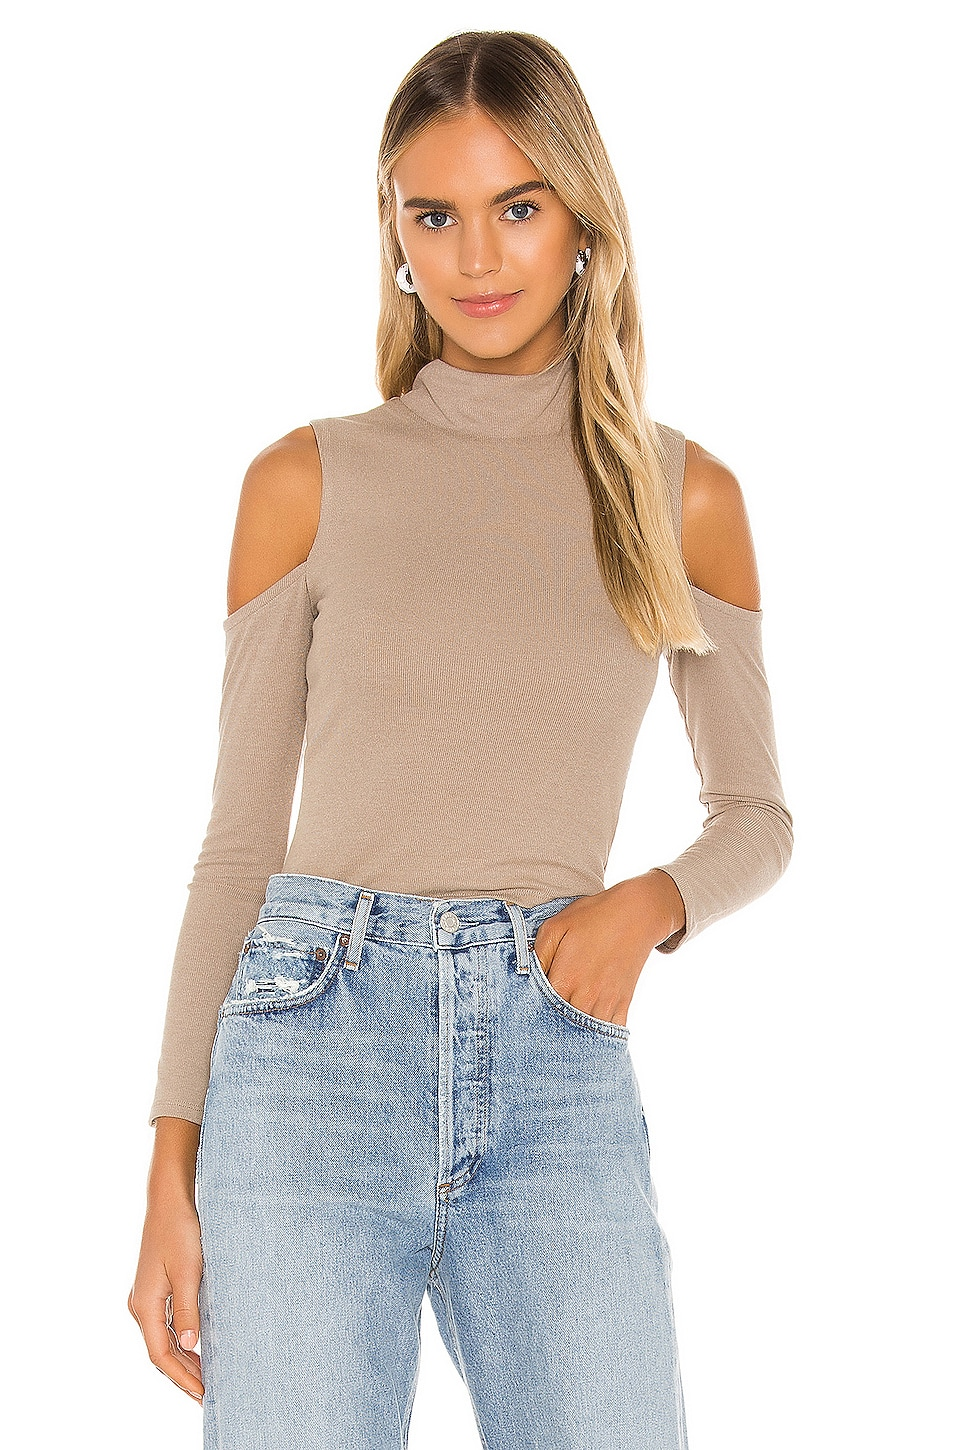 Privacy Please Rockwell Top in Taupe